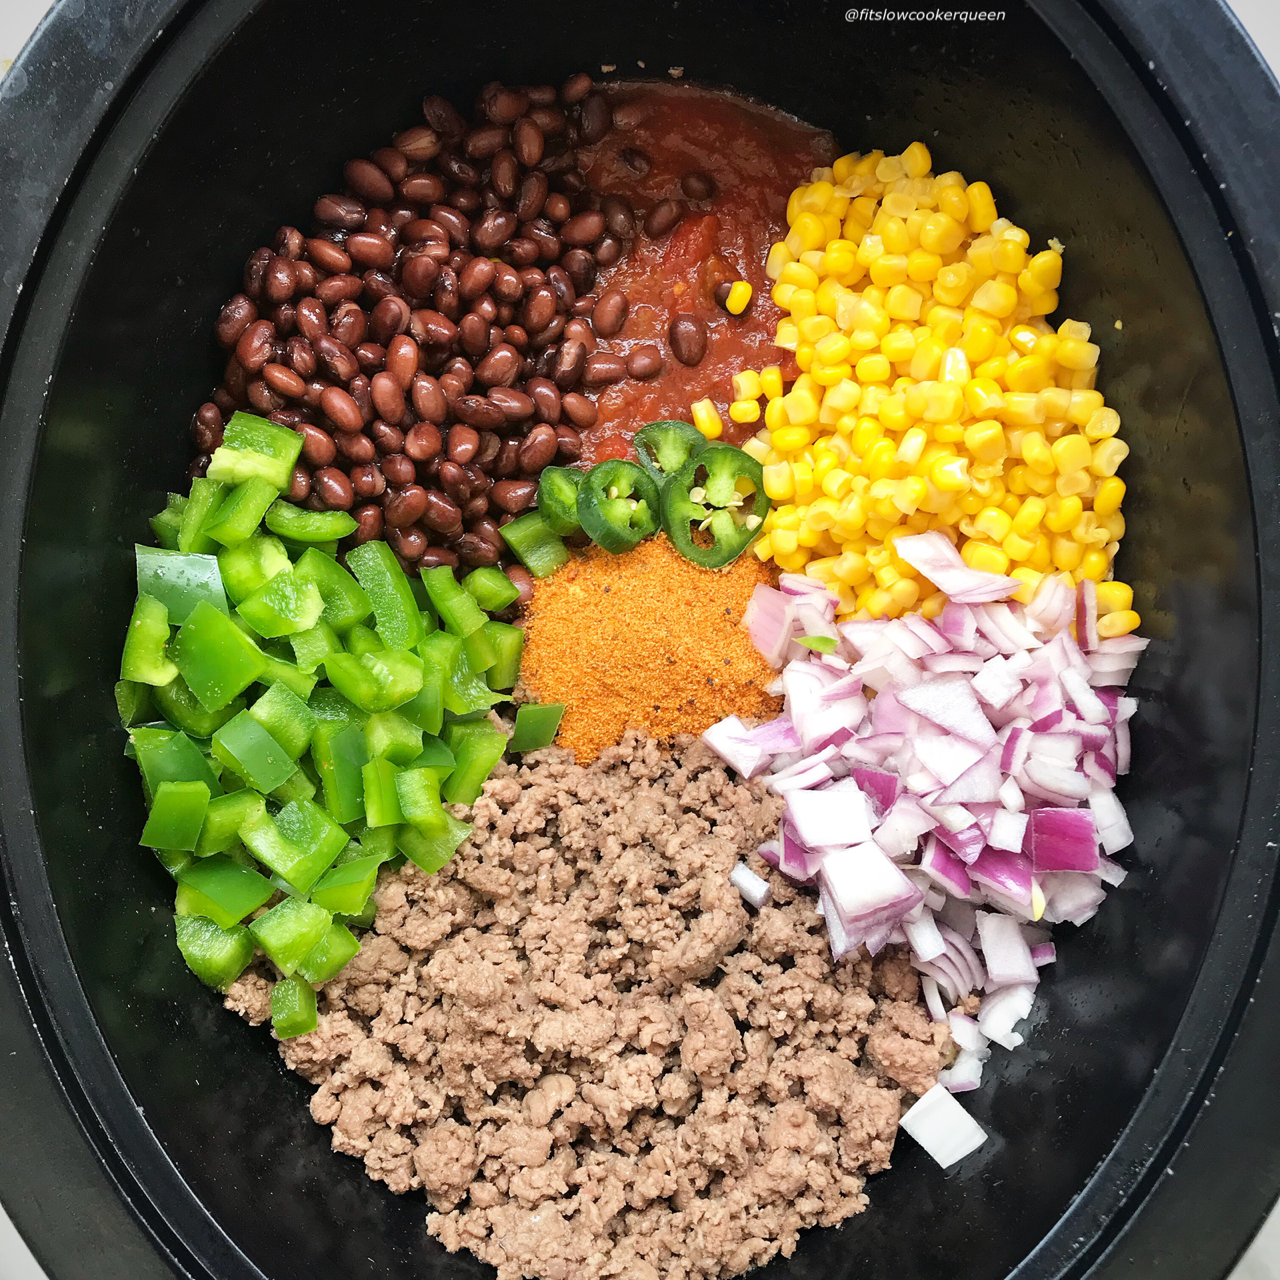 TexMex ingredients and flavors combined with the ground meat of choice make for a quick and easy slow cooker meal. Spice up your next Taco Tuesday with this meat can be served in so many different ways -  tacos, enchiladas, salad, lettuce wraps etc.